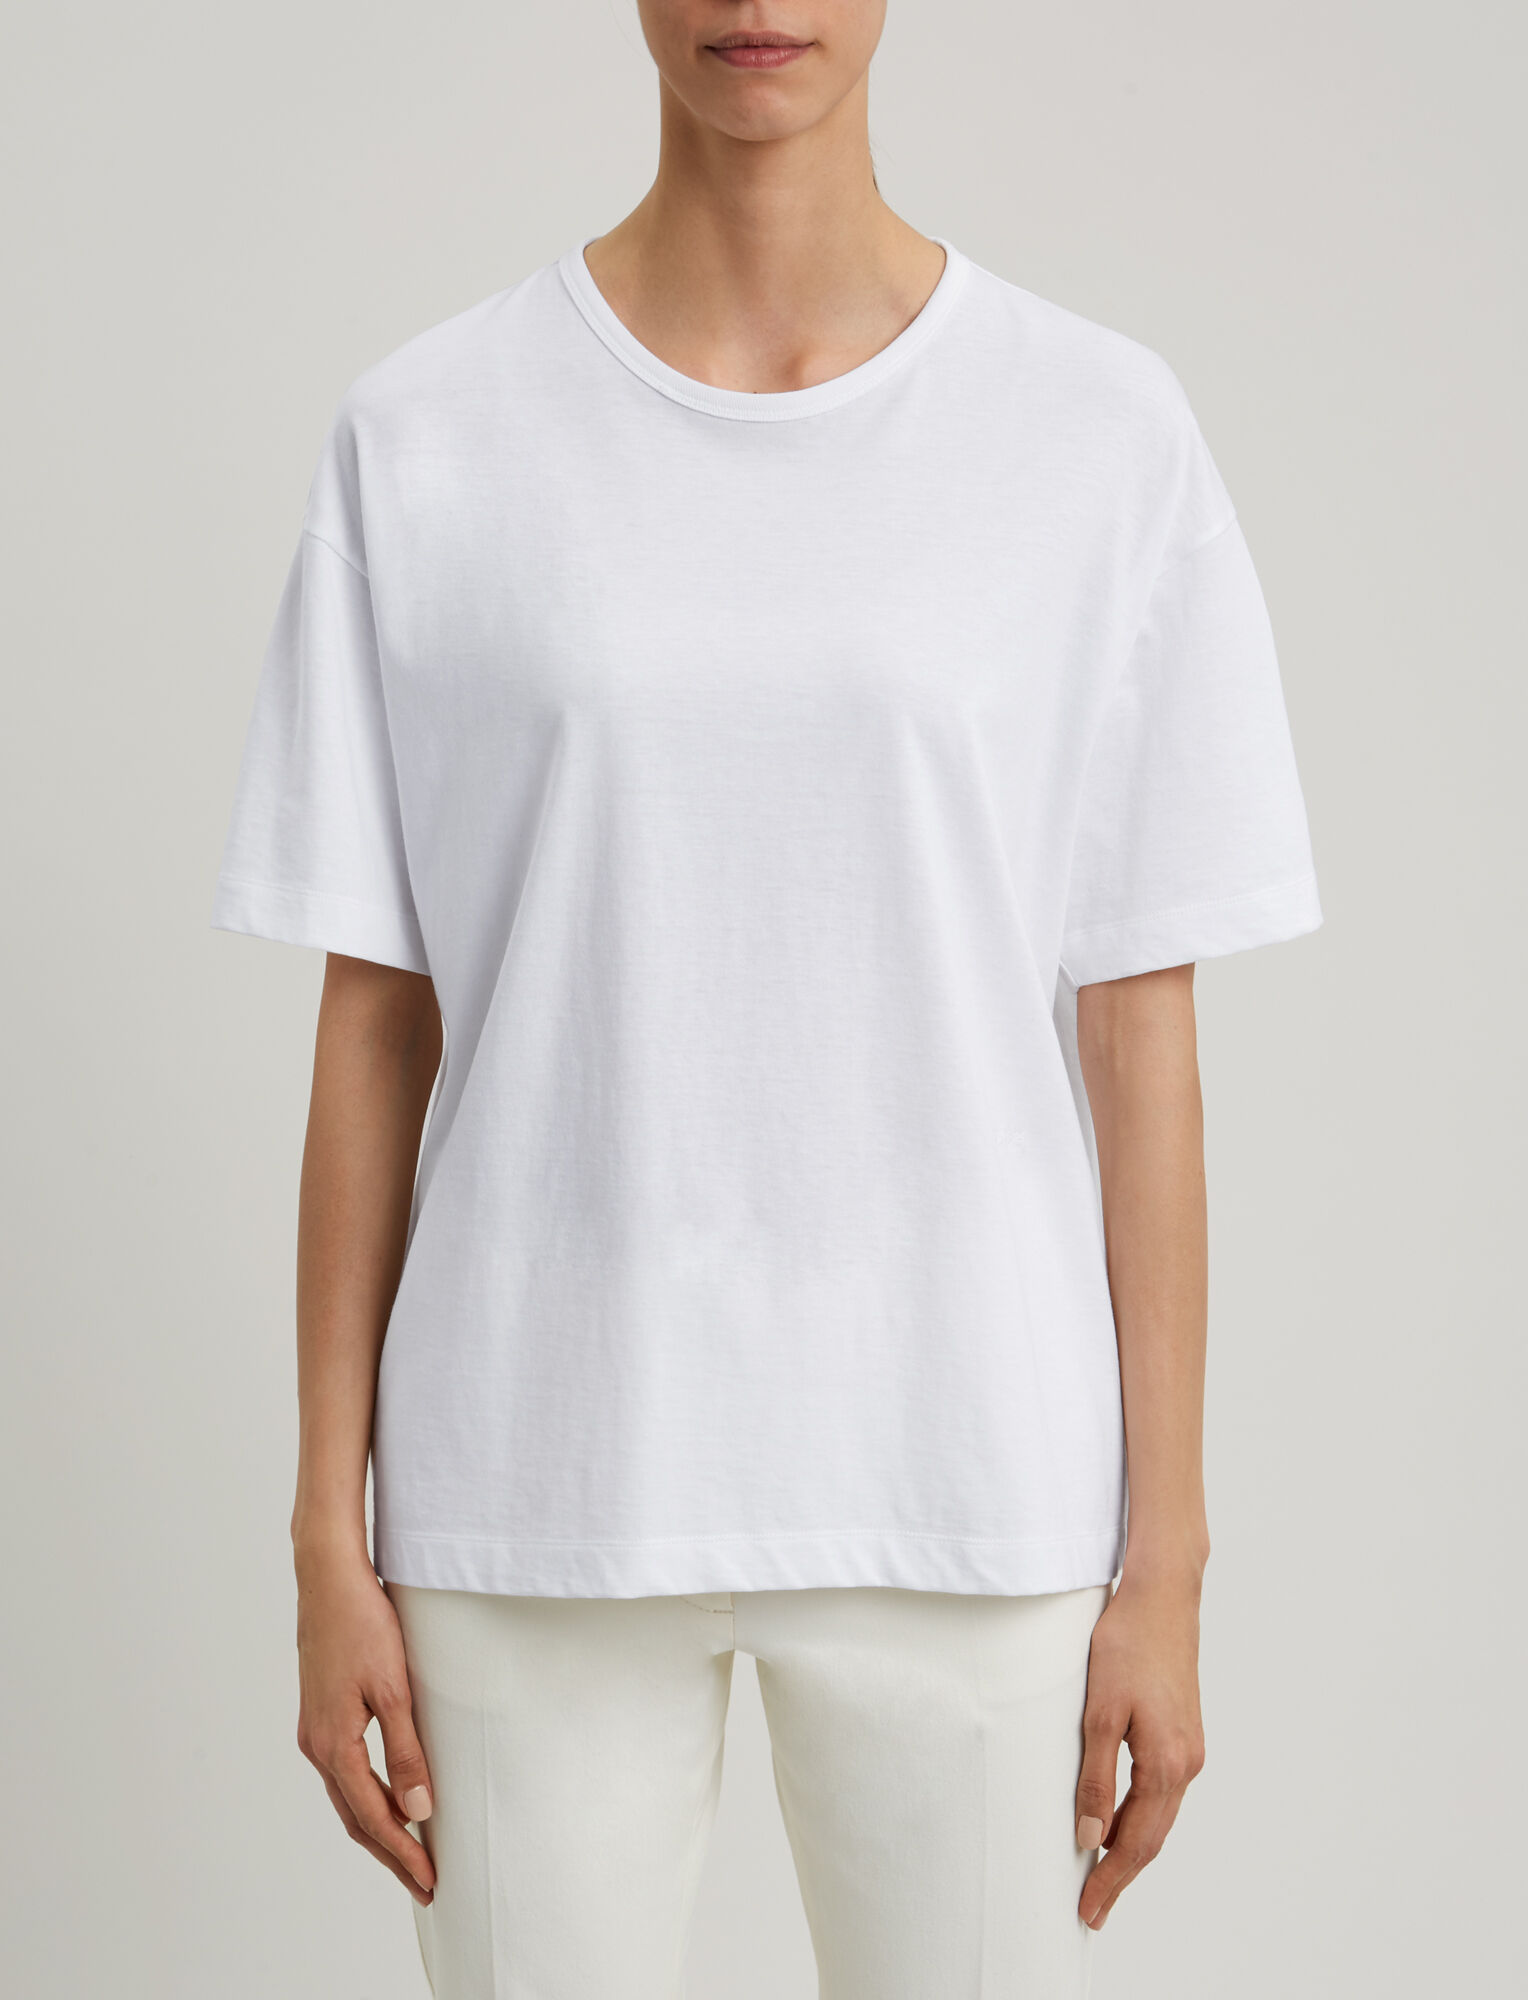 Joseph, Tee-shirt Perfect en jersey, in WHITE